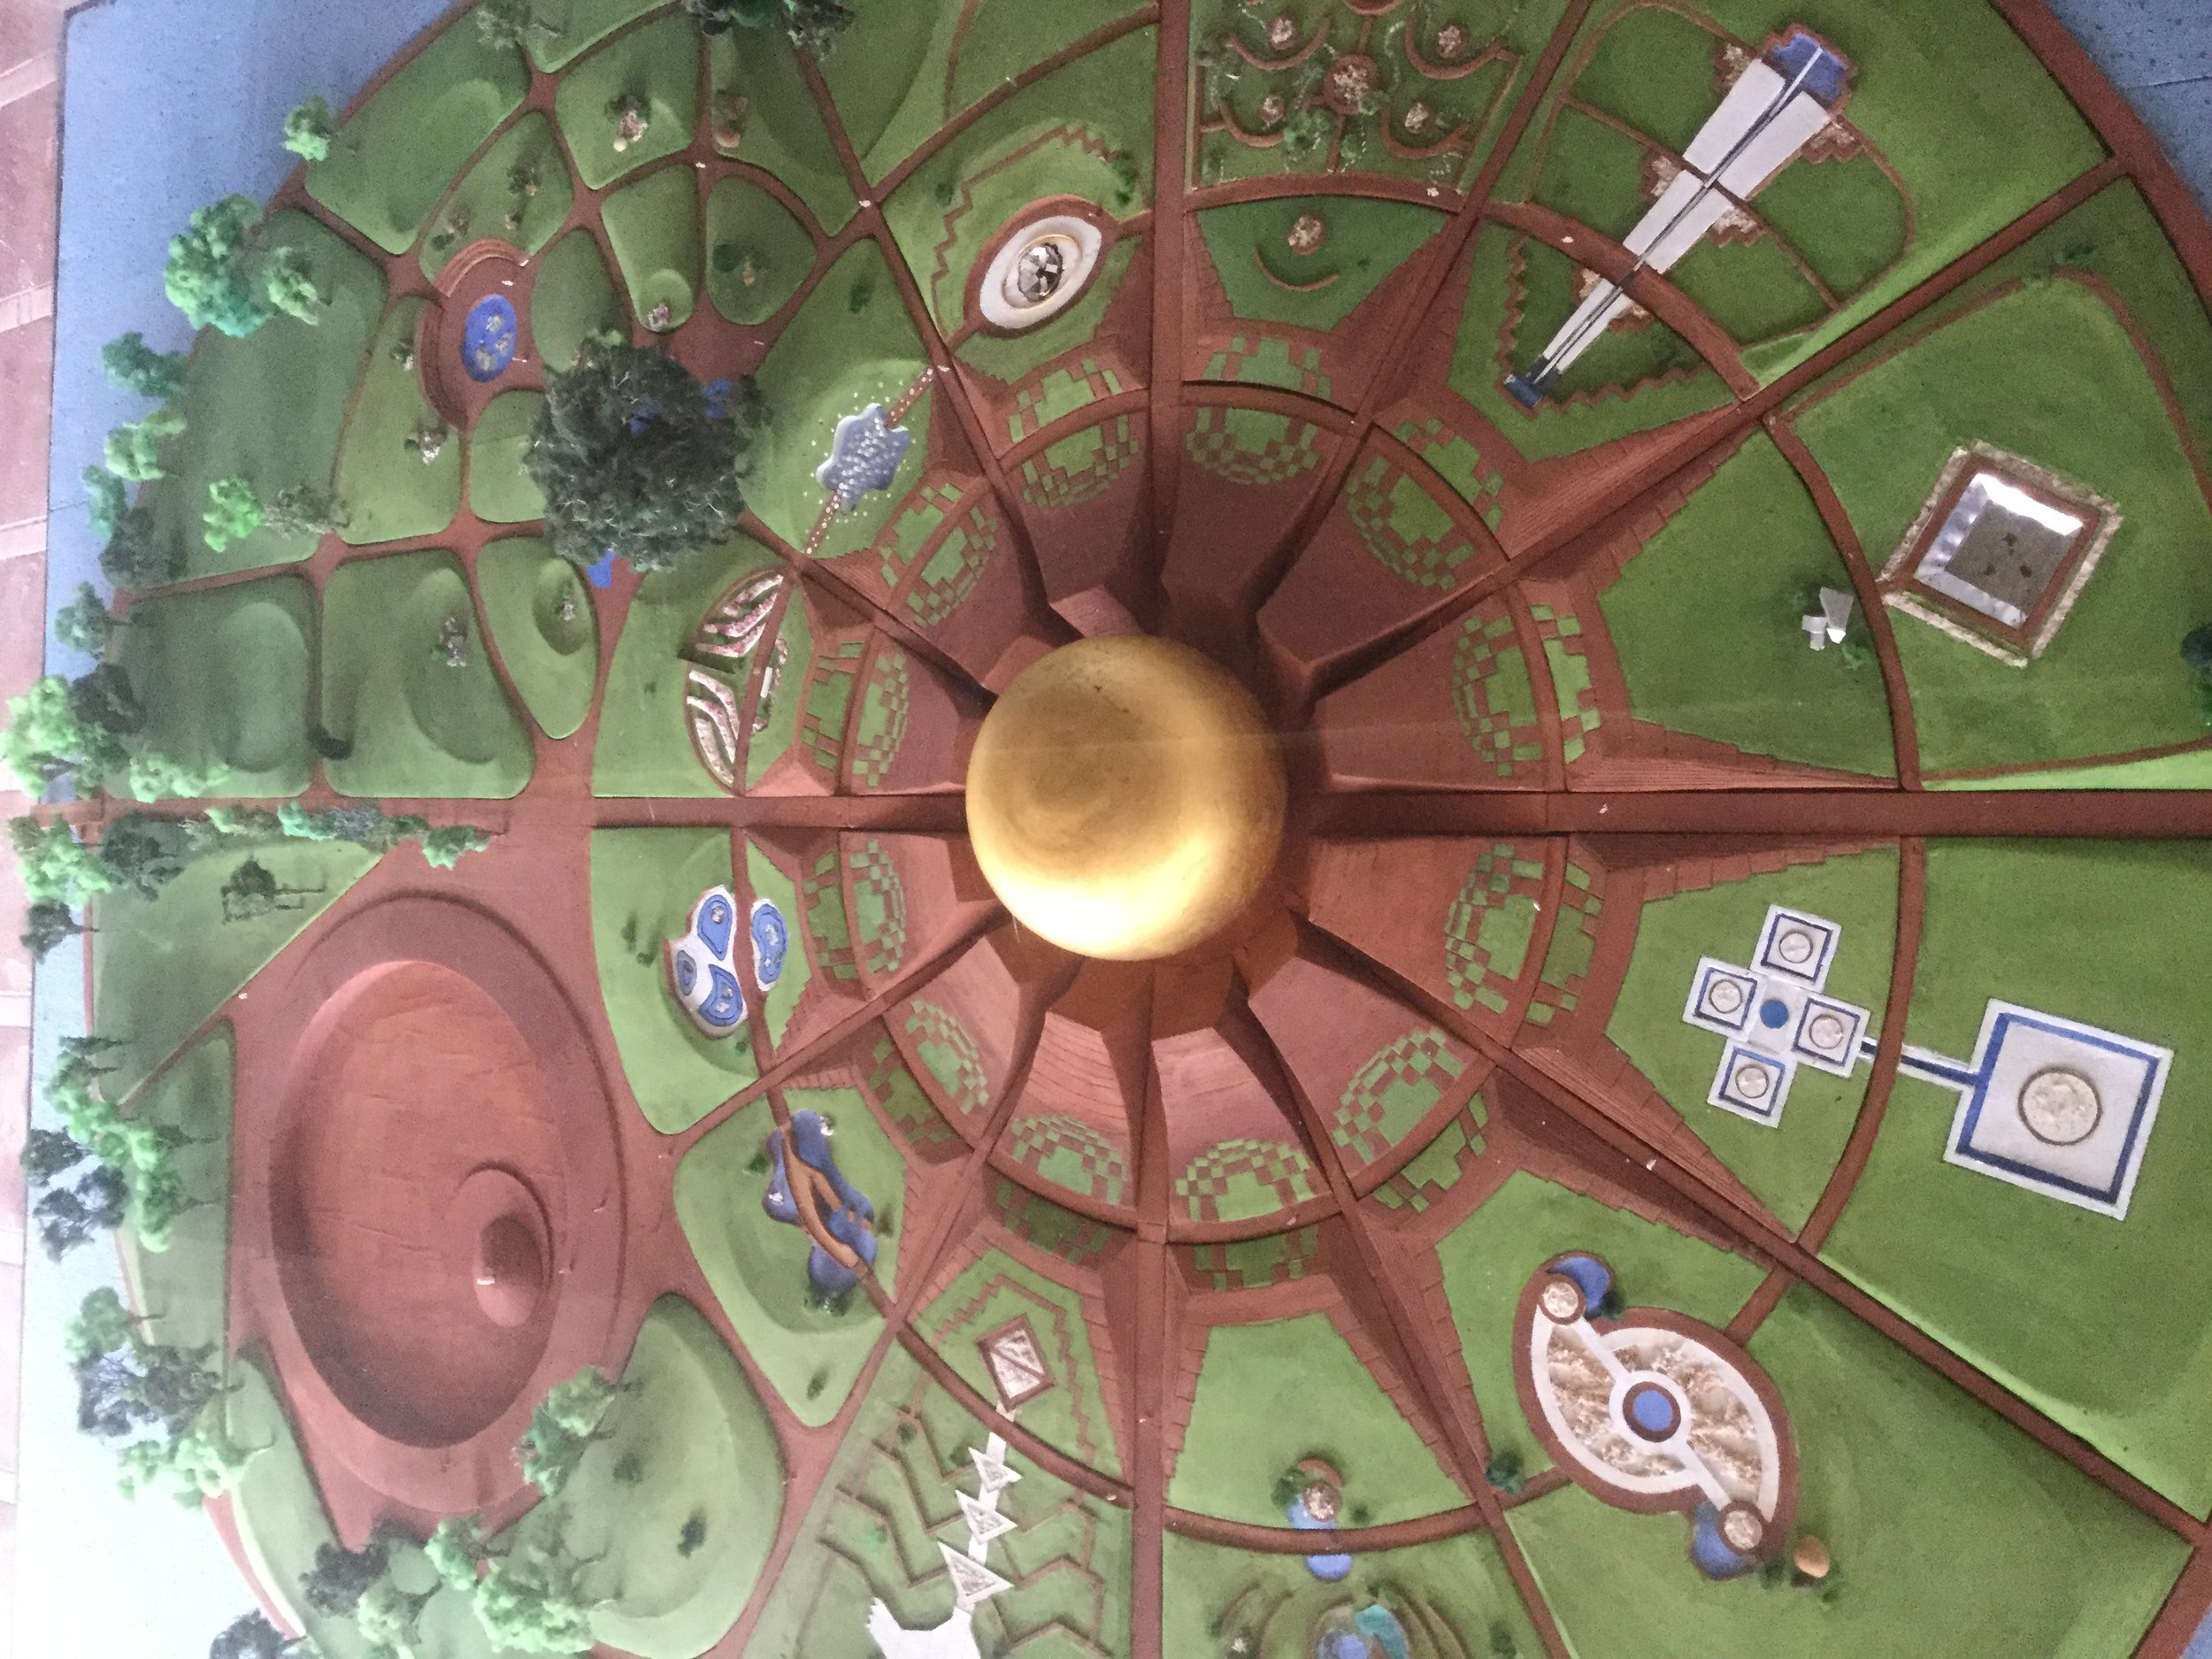 This model is at Auroville Town Hall. It shows all the twelve gardens - three have been built so far.